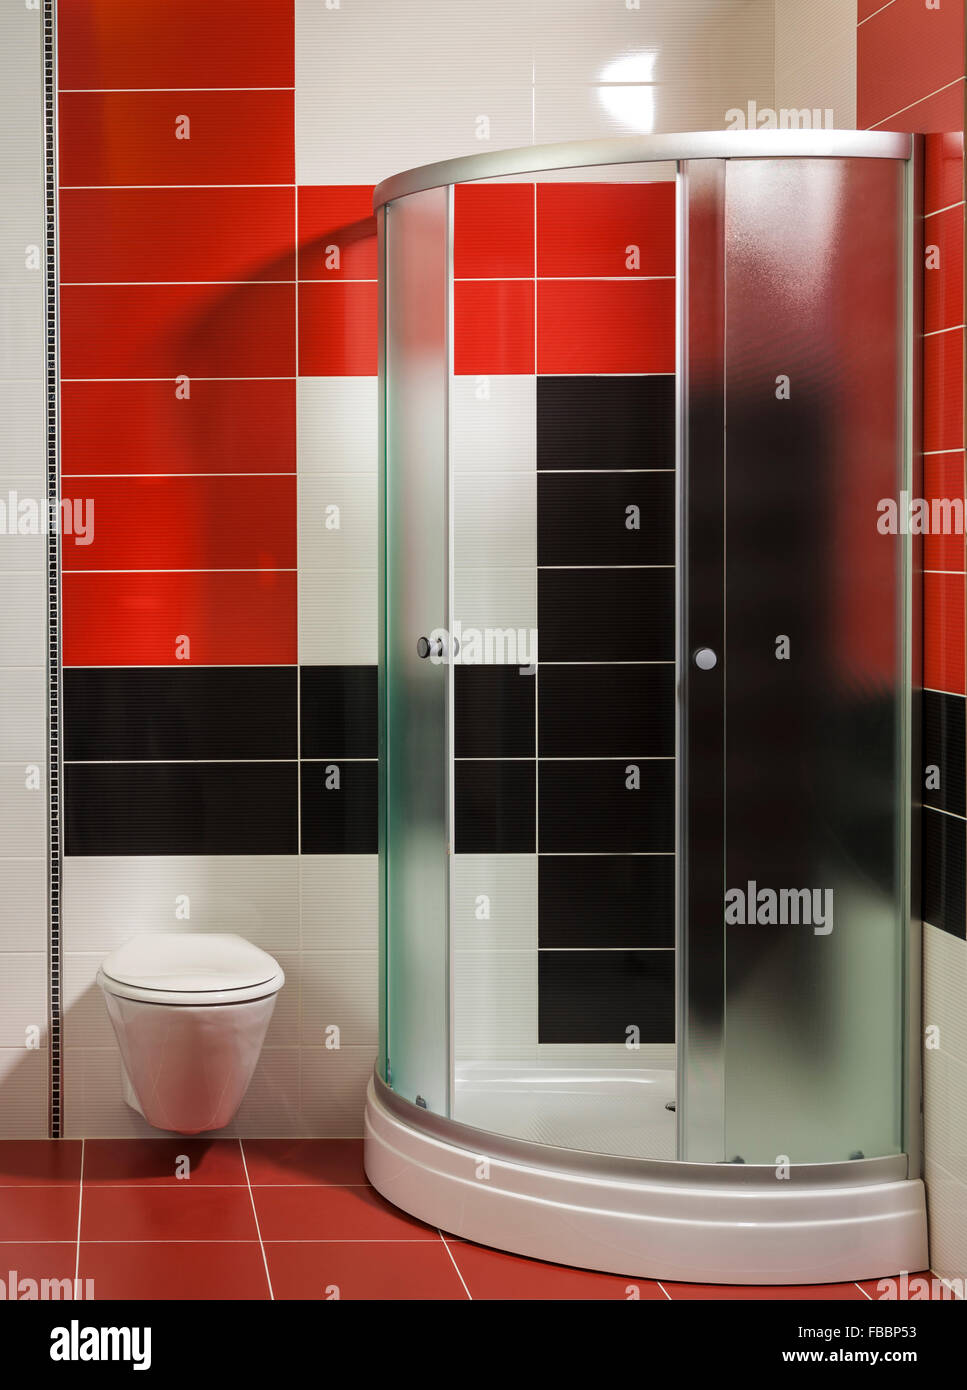 bathroom black white tiles stockfotos bathroom black white tiles bilder alamy. Black Bedroom Furniture Sets. Home Design Ideas